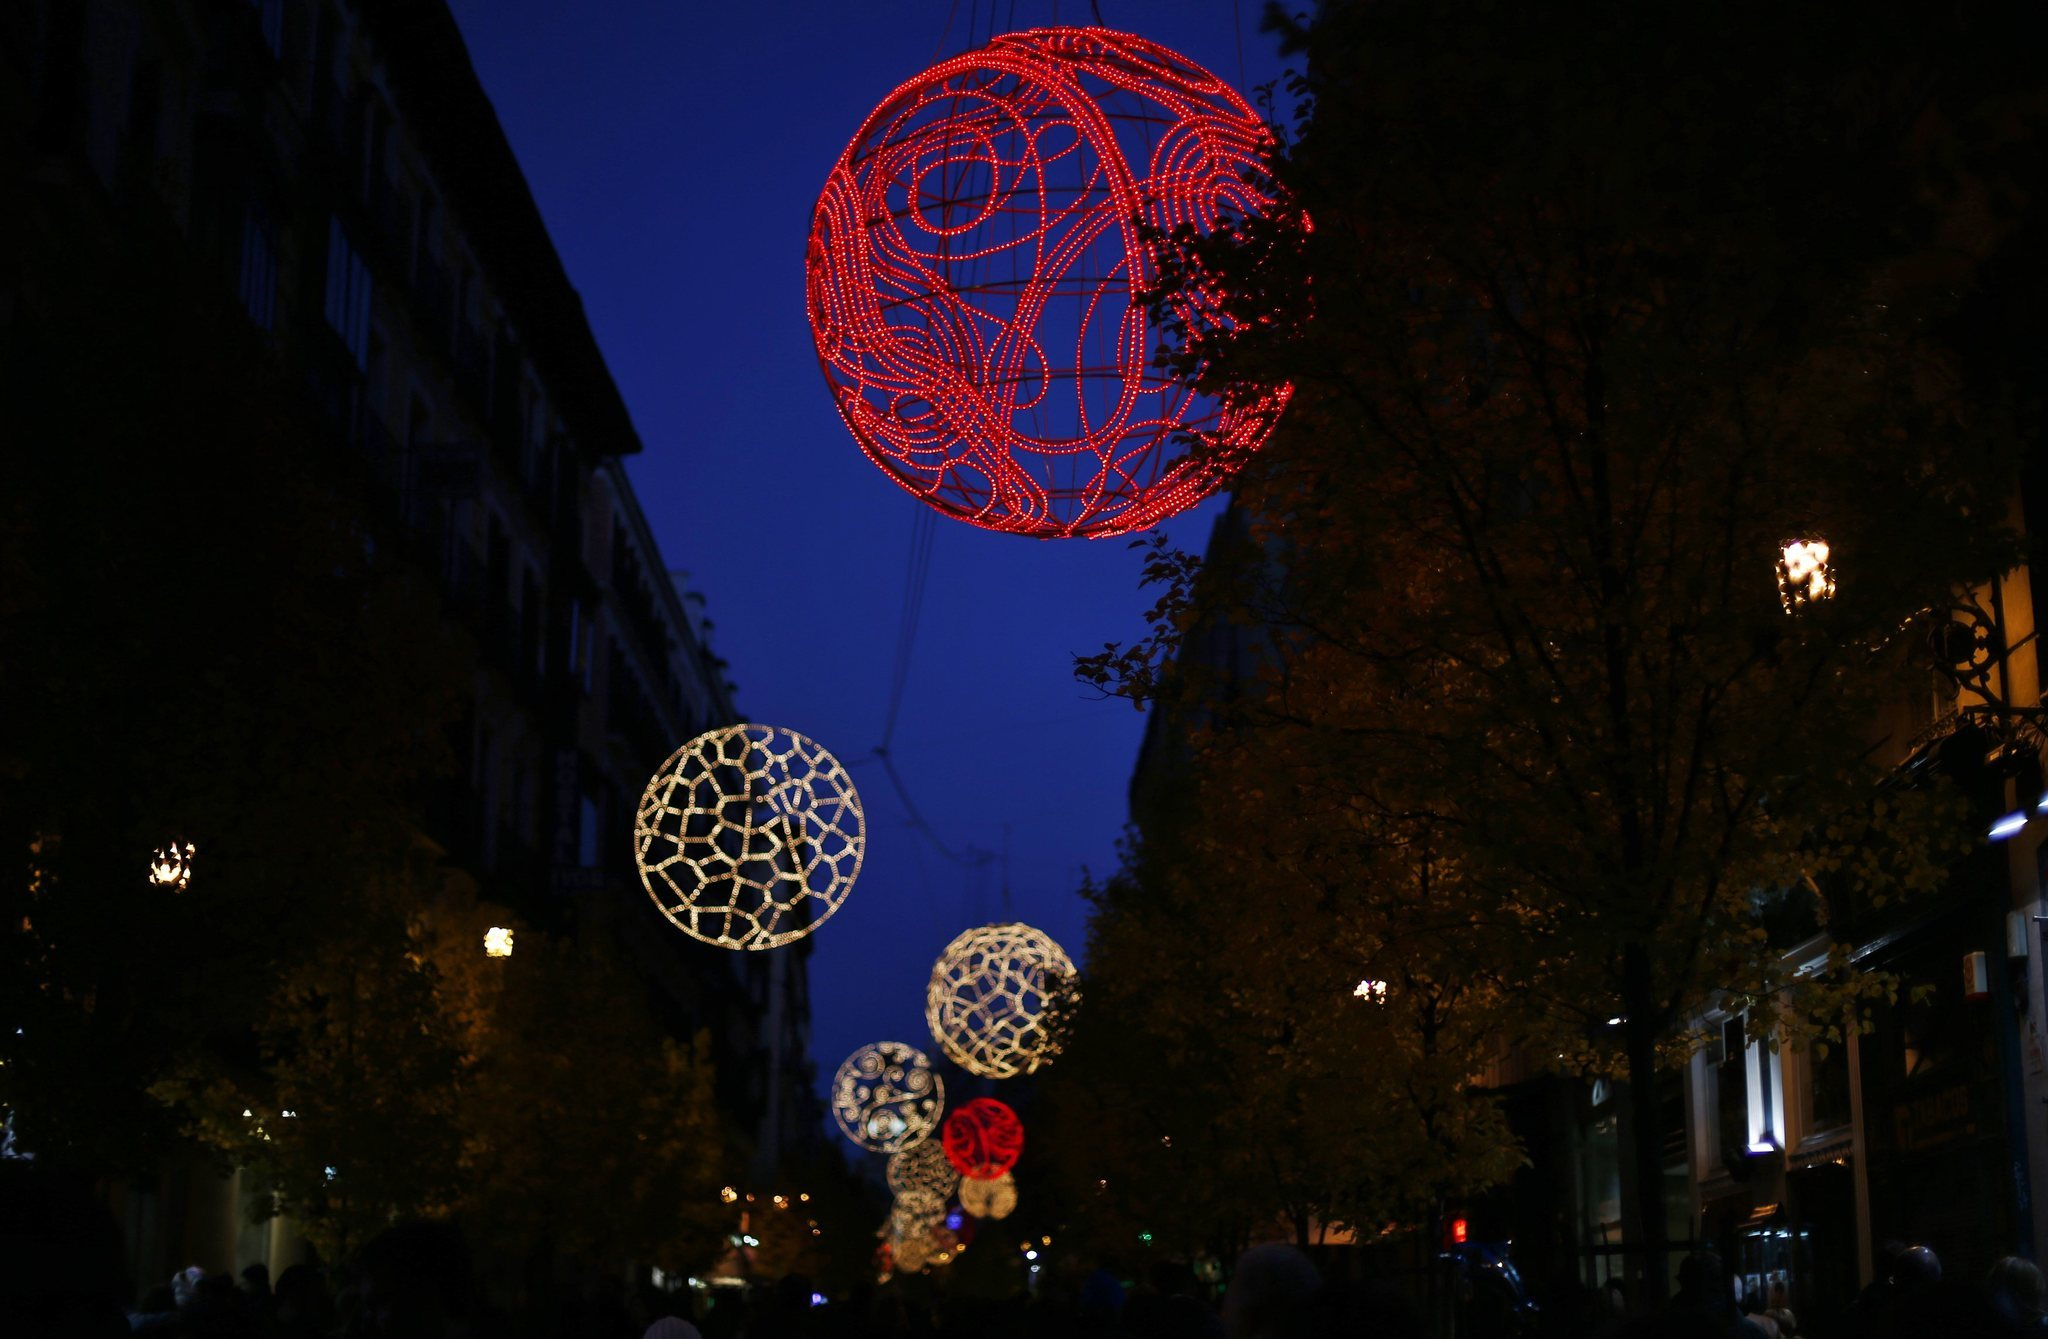 Pictures: Holiday lights from around the globe - Christmas in Madrid